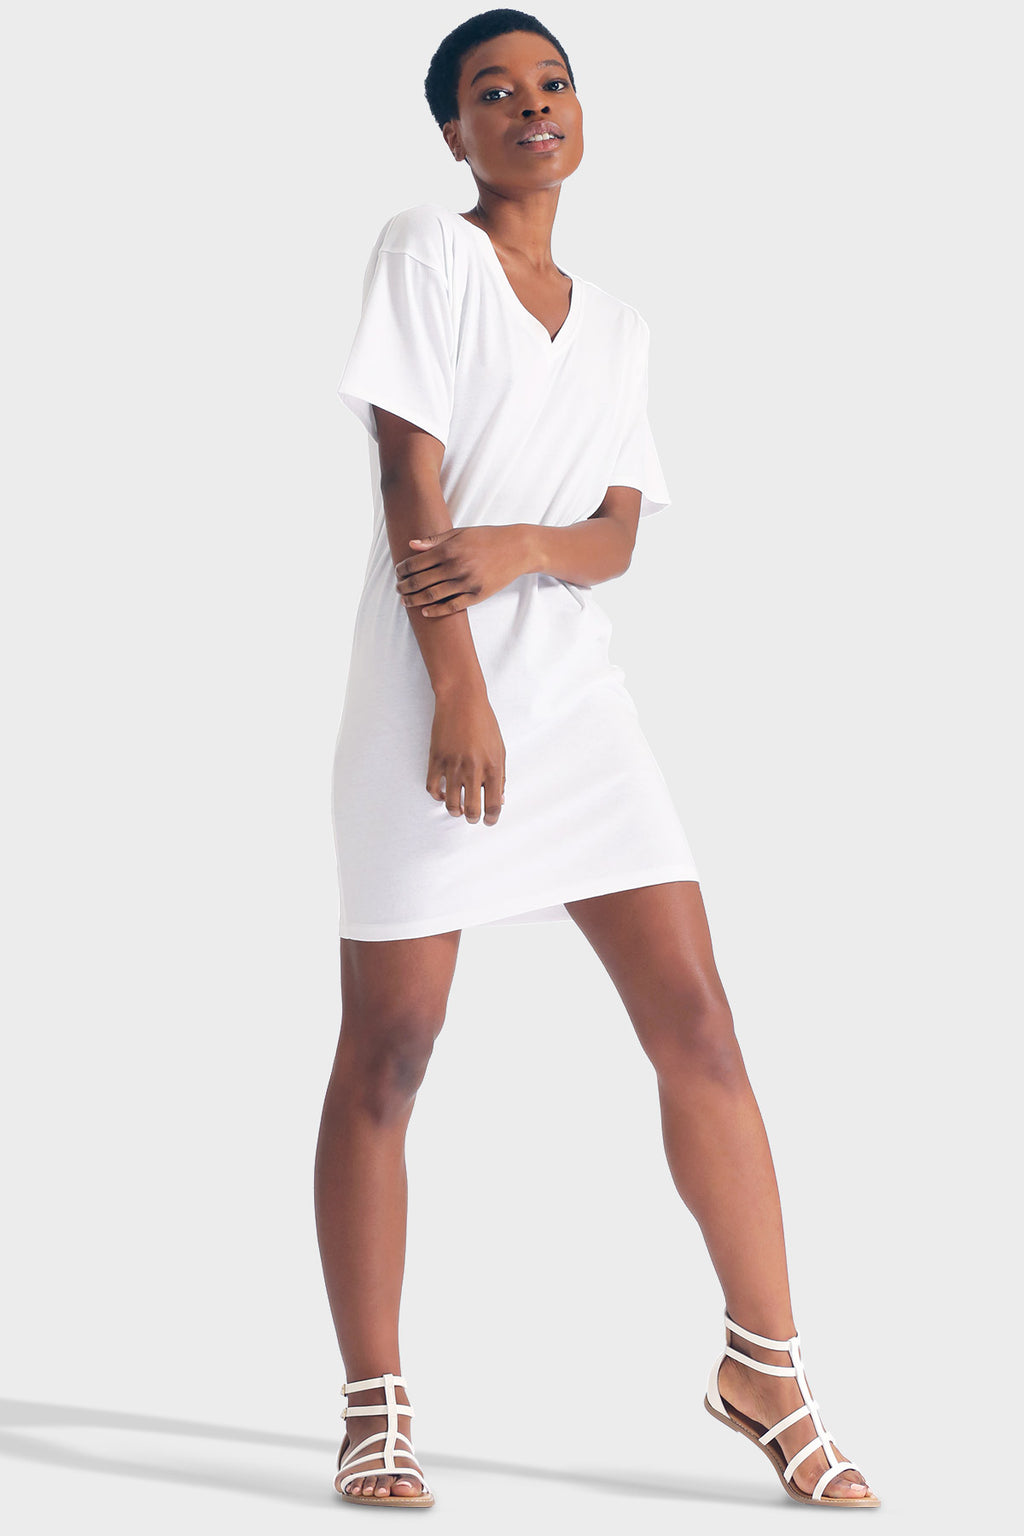 337 BRAND Women's Sustainable Basic Eliza T-Shirt Dress